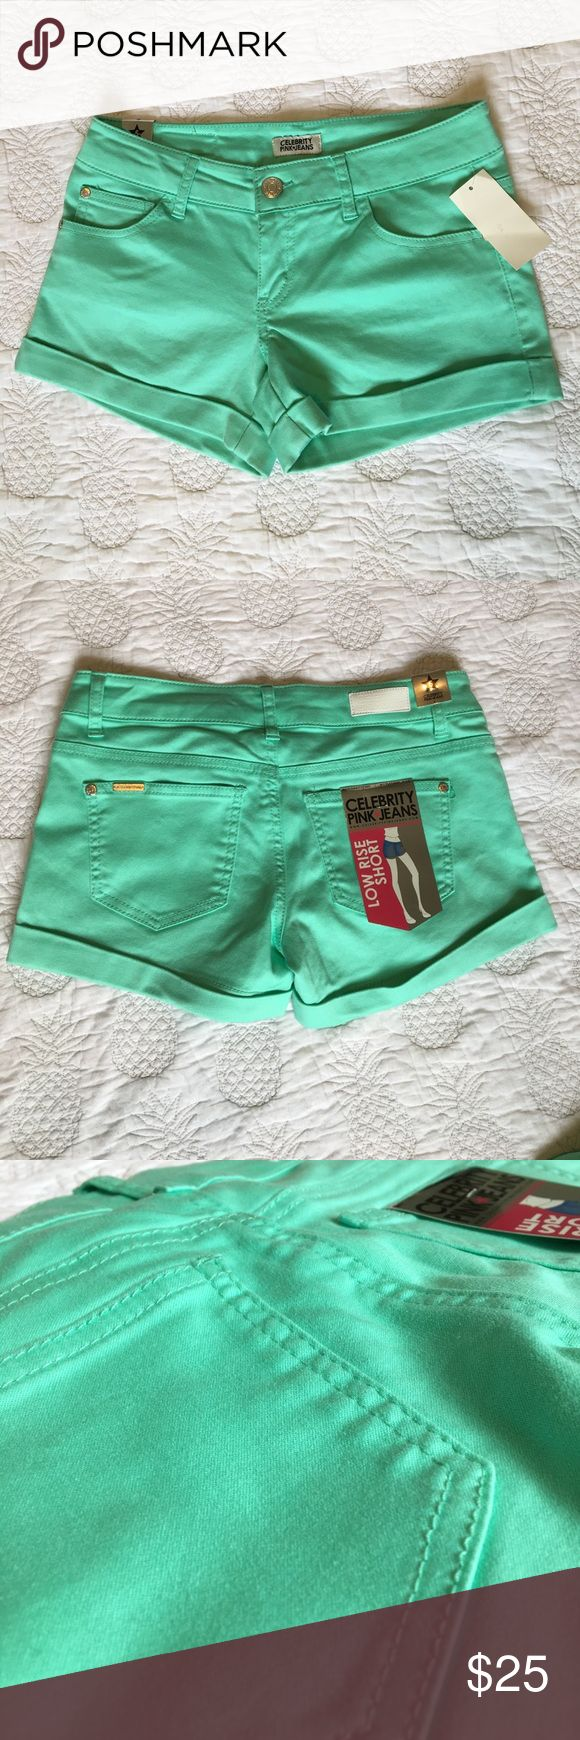 Celebrity pink jeans Aqua shorts This is a pair of NWT celebrity Pick k jeans in an aqua color cotton short. They are stretchy and very breathable and he perfect staple to last all summer long! The bottom of each leg is slightly cuffed, while there are 5 functional pockets. These are in perfect condition, I simply forgot I had them and are too short for me now (this mama shouldn't wear short shorts!). All retail tags are still in tact. These go perfectly with your favorite bikini, a white…